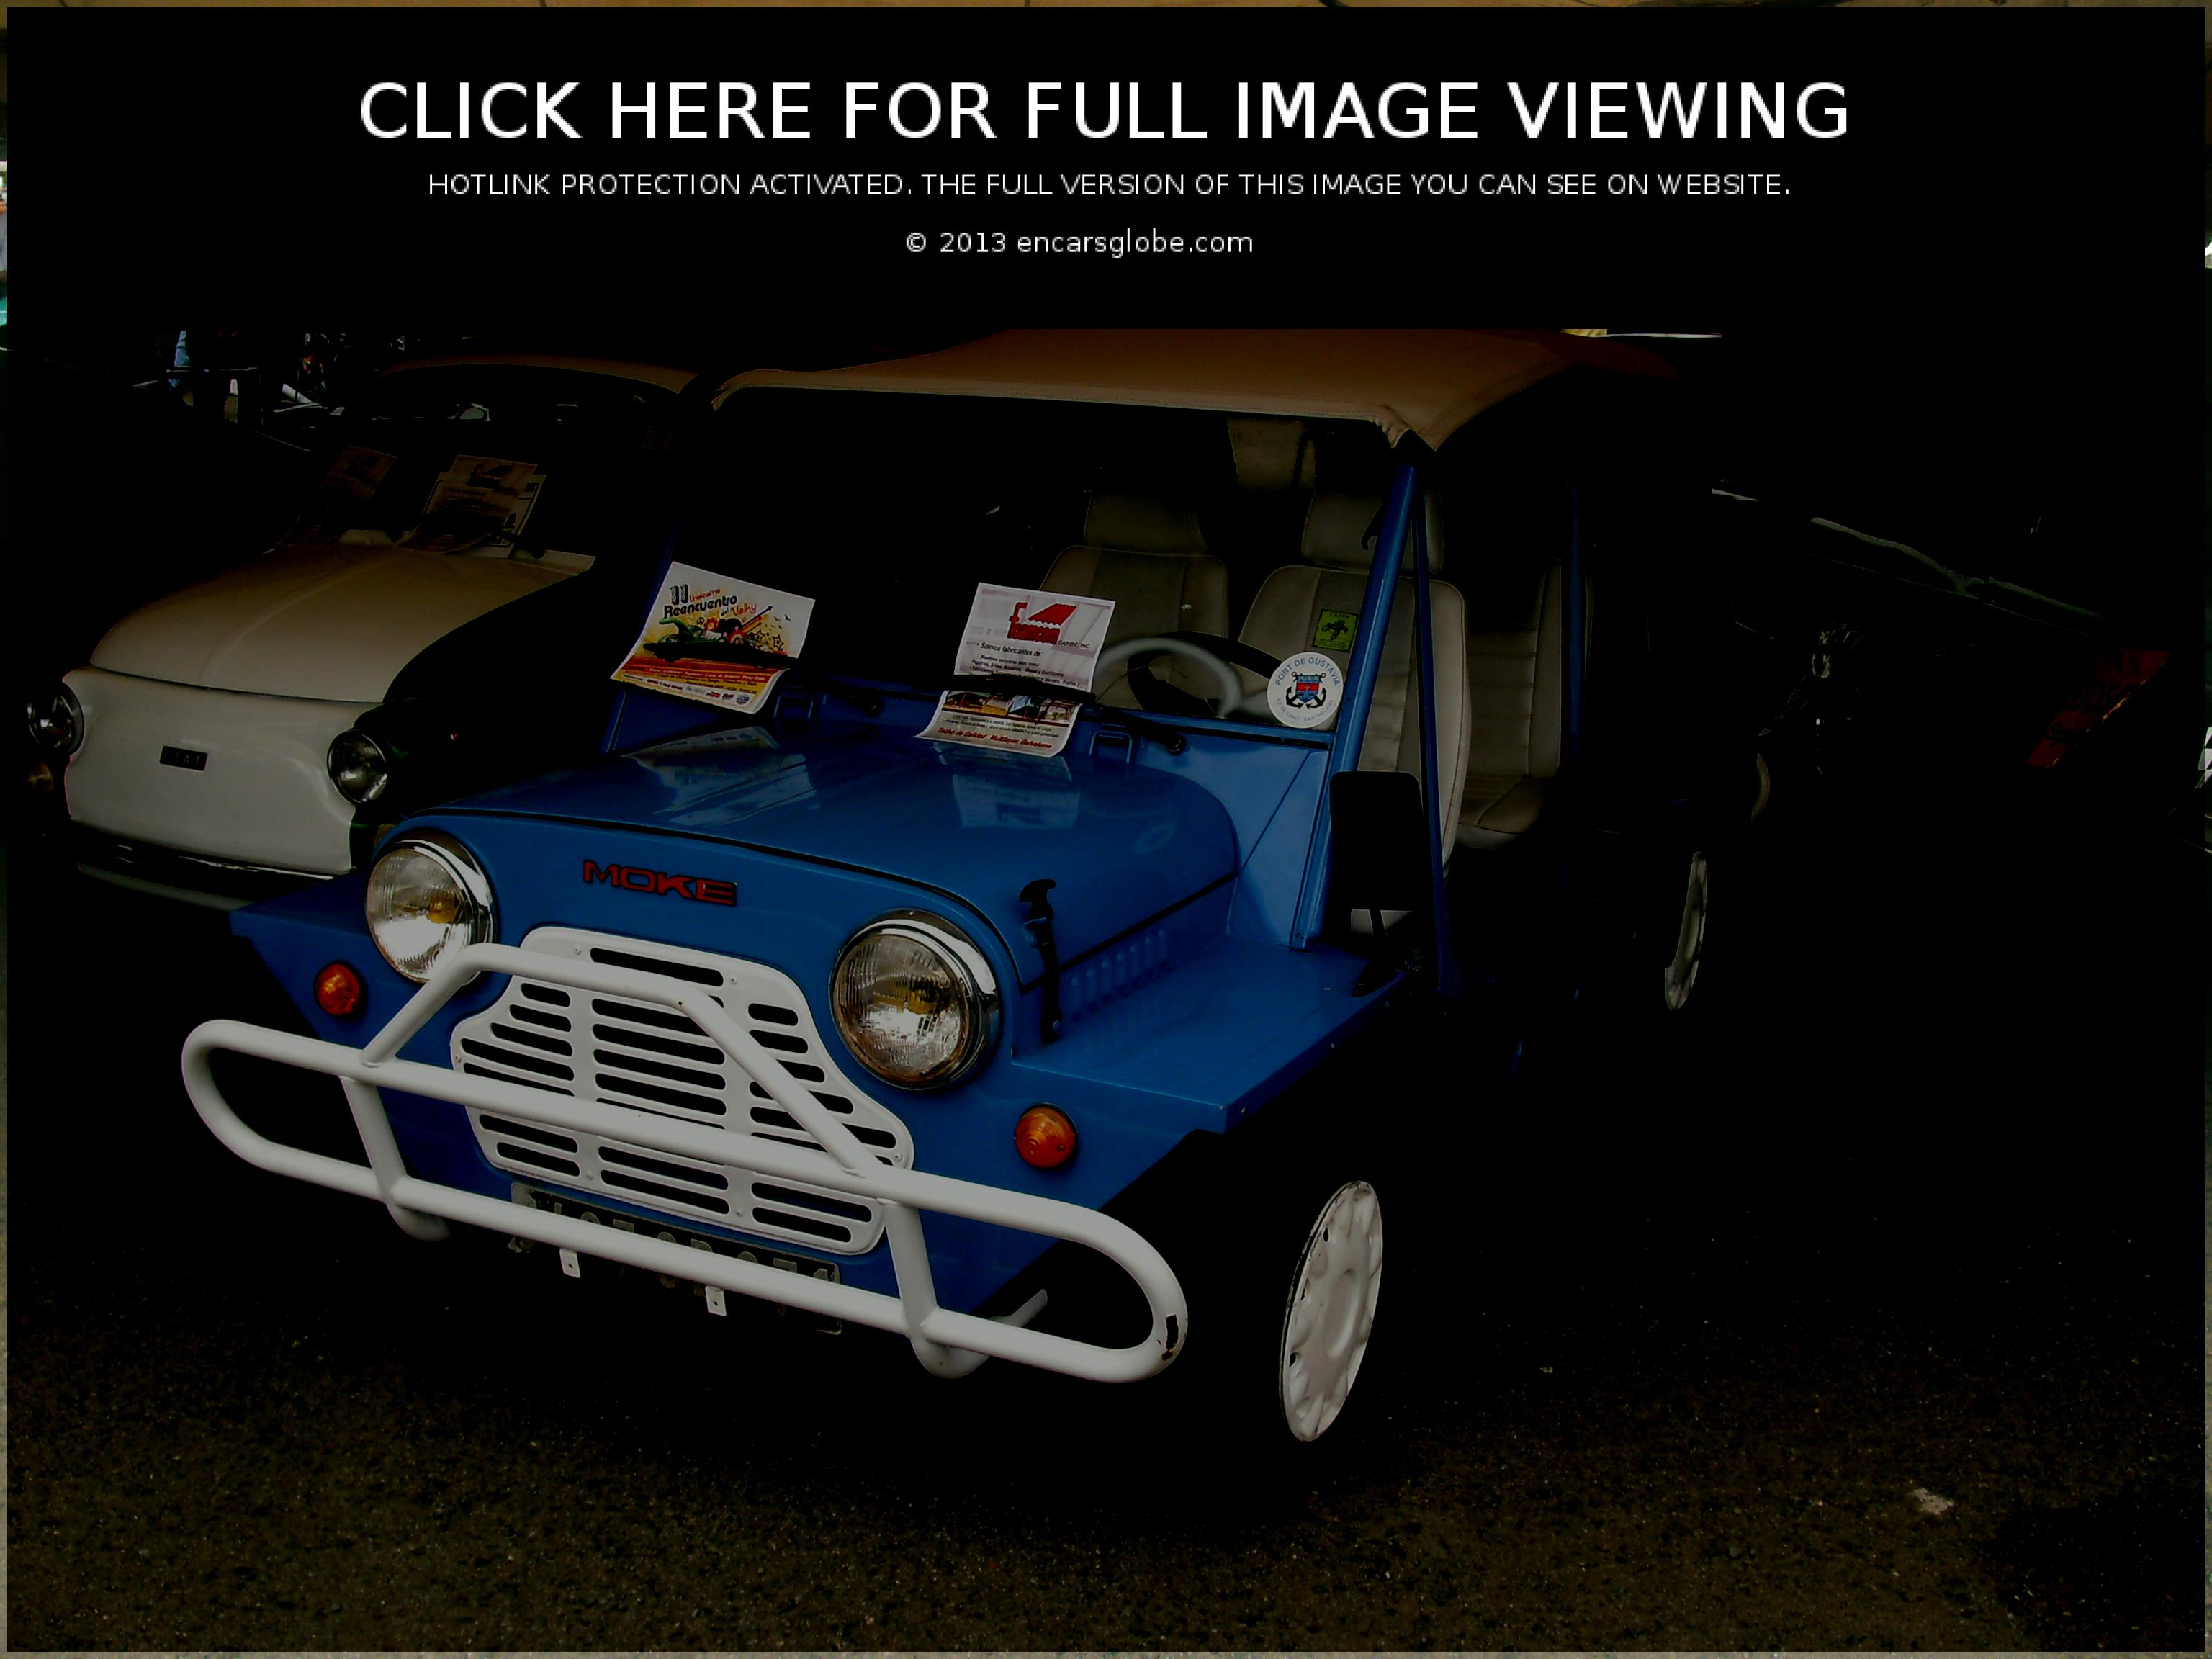 Morris Mini Moke: Description of the model, photo gallery ...